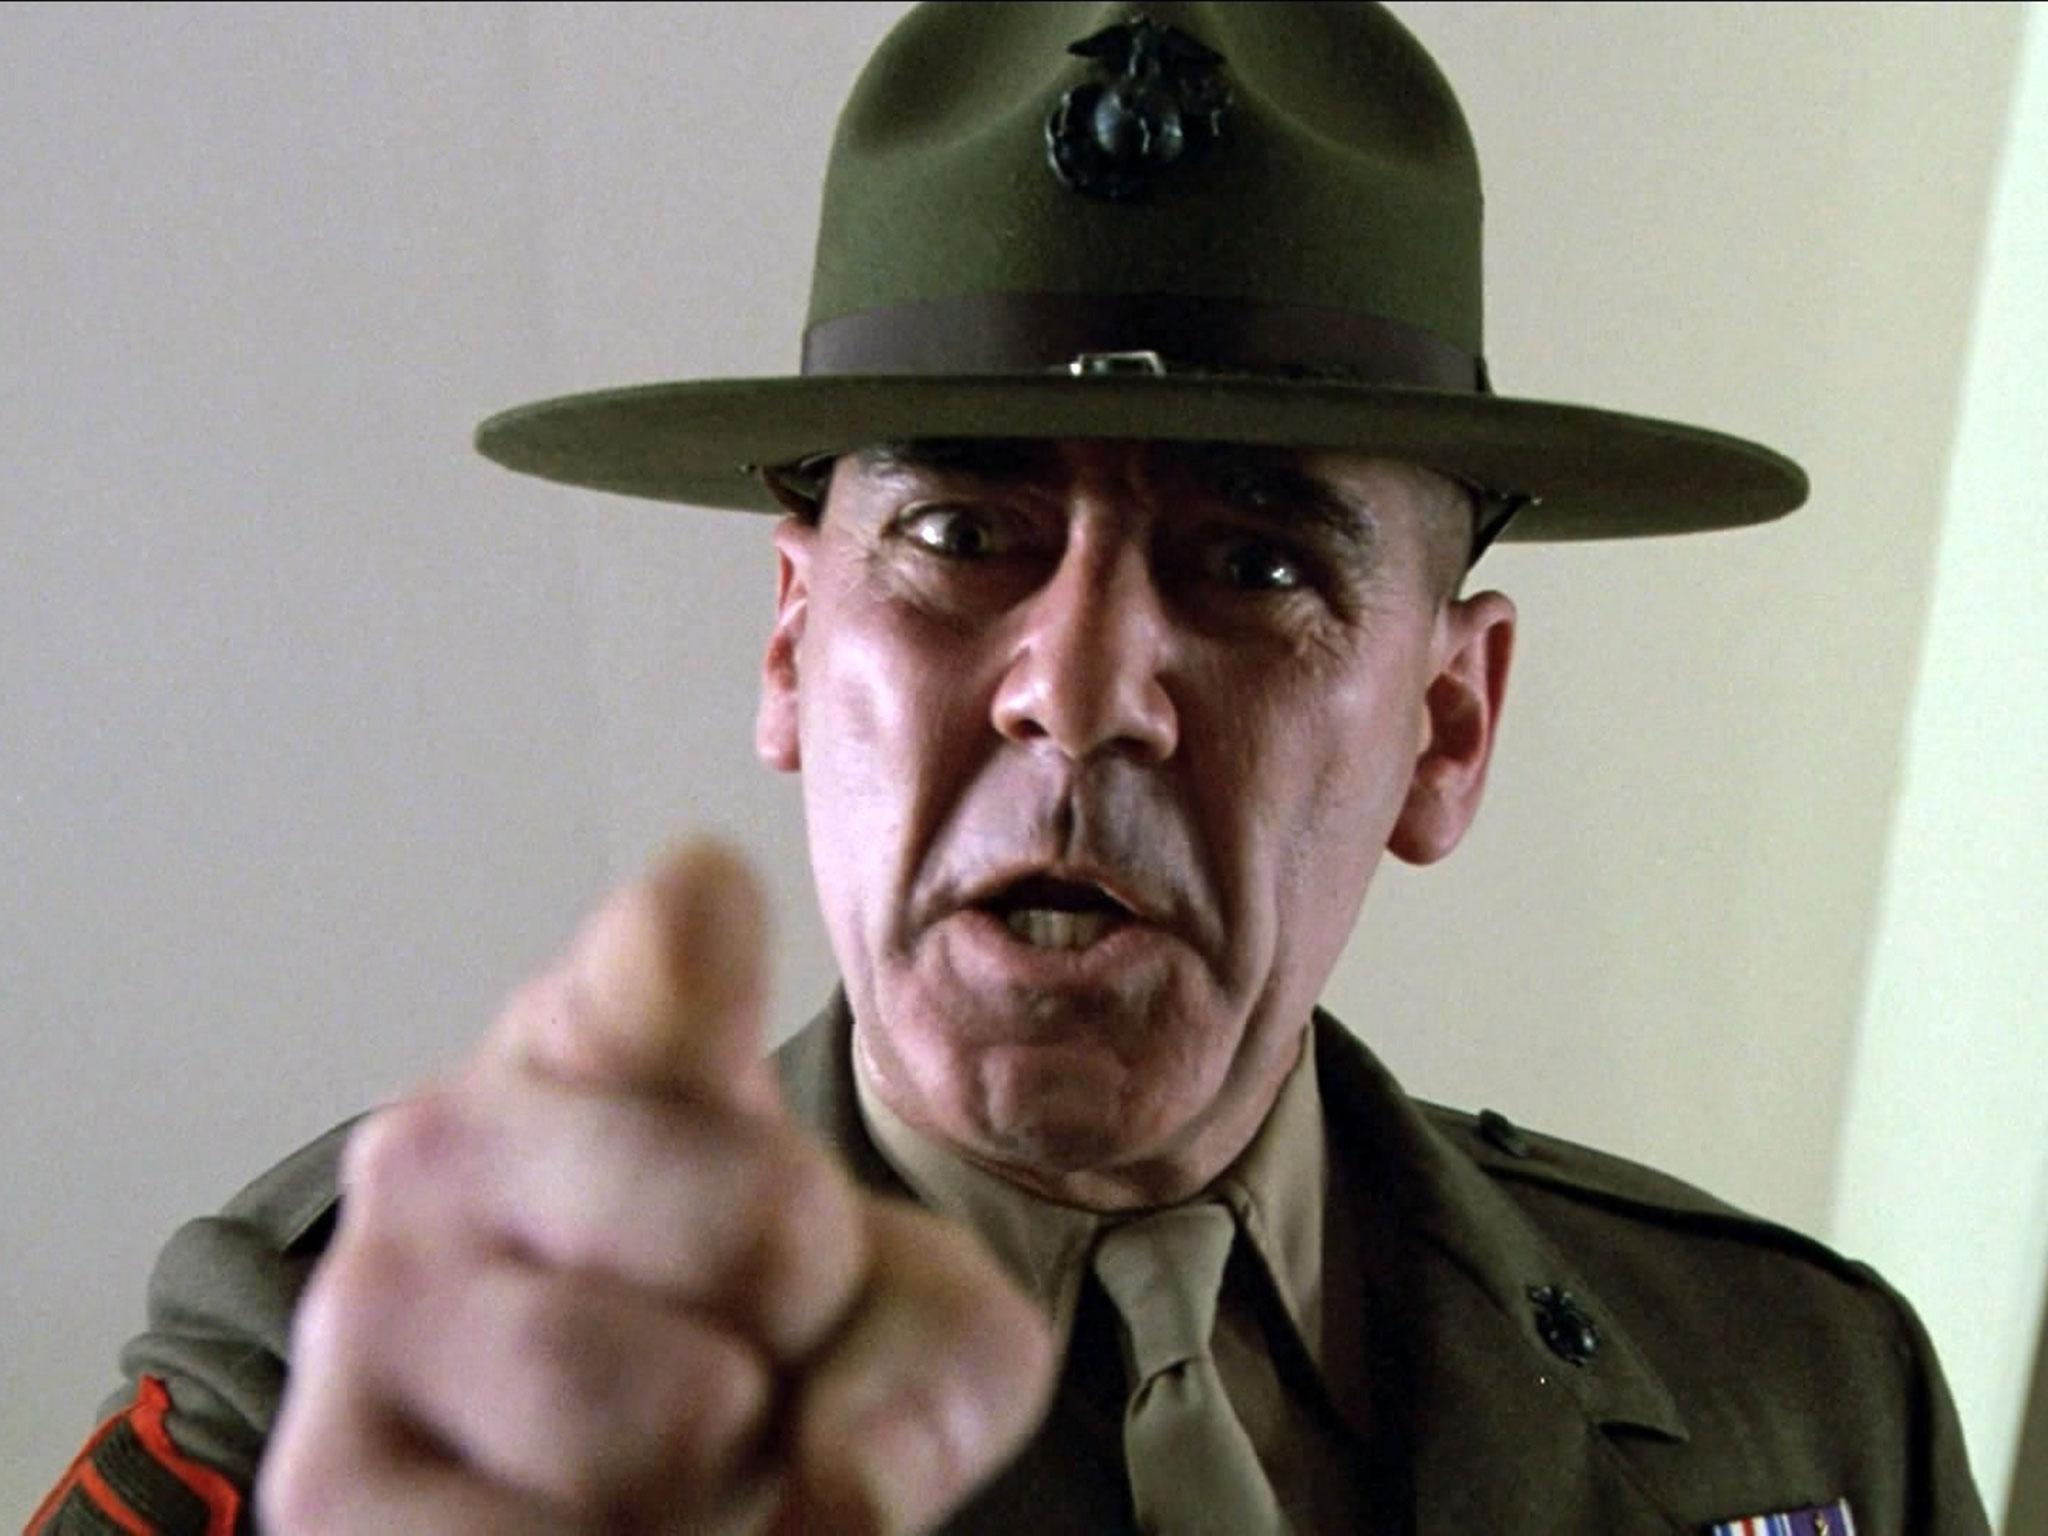 R Lee Ermey, 'Full Metal Jacket' actor, dies aged 74